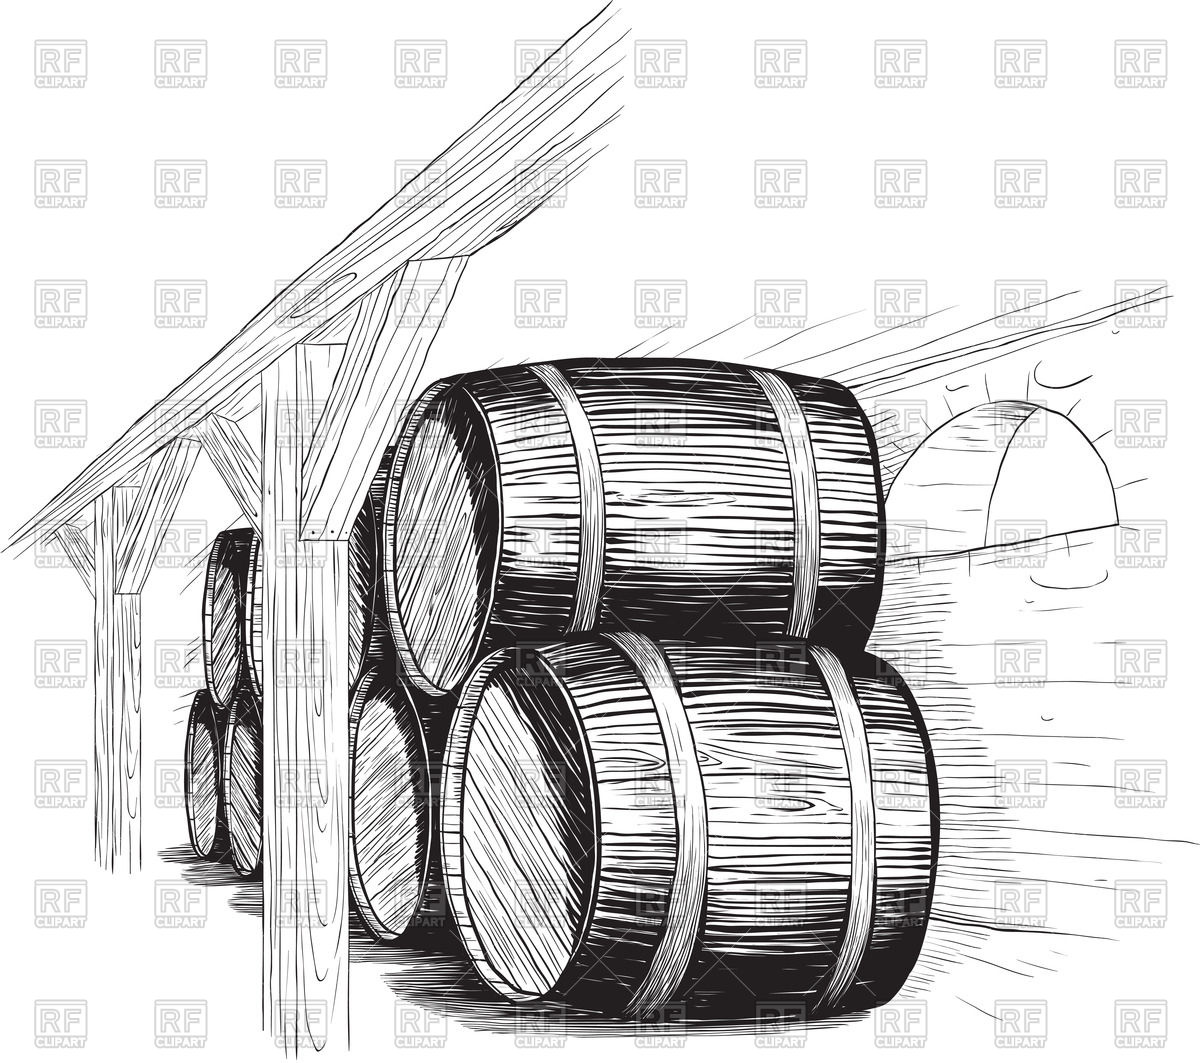 Old wine cellar with rows of wooden barrels Vector Image #60681.